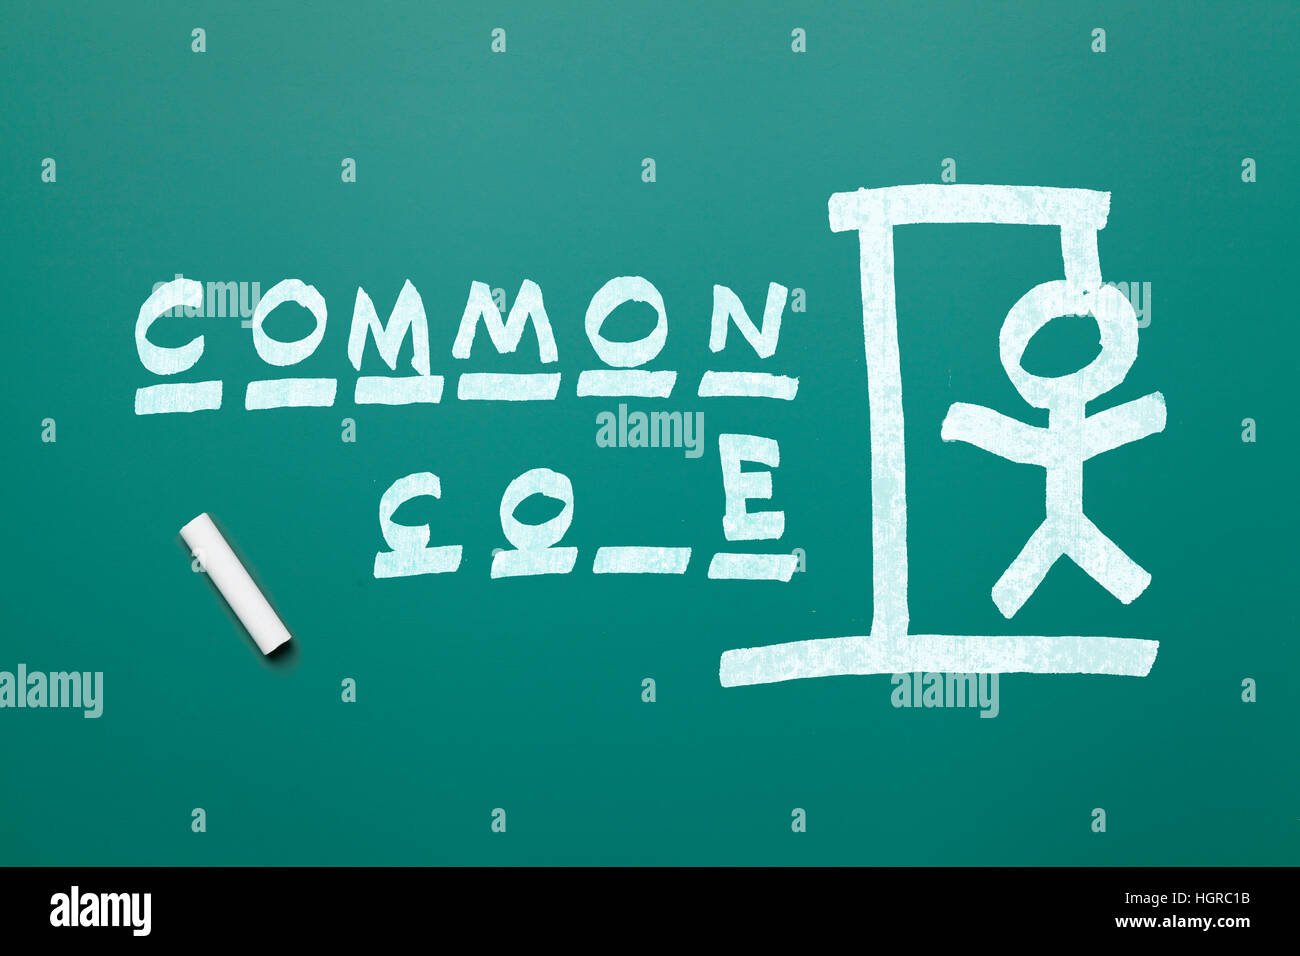 Common Core Hang Man on Green Chalk Board Isolated on White Background. - Stock Image